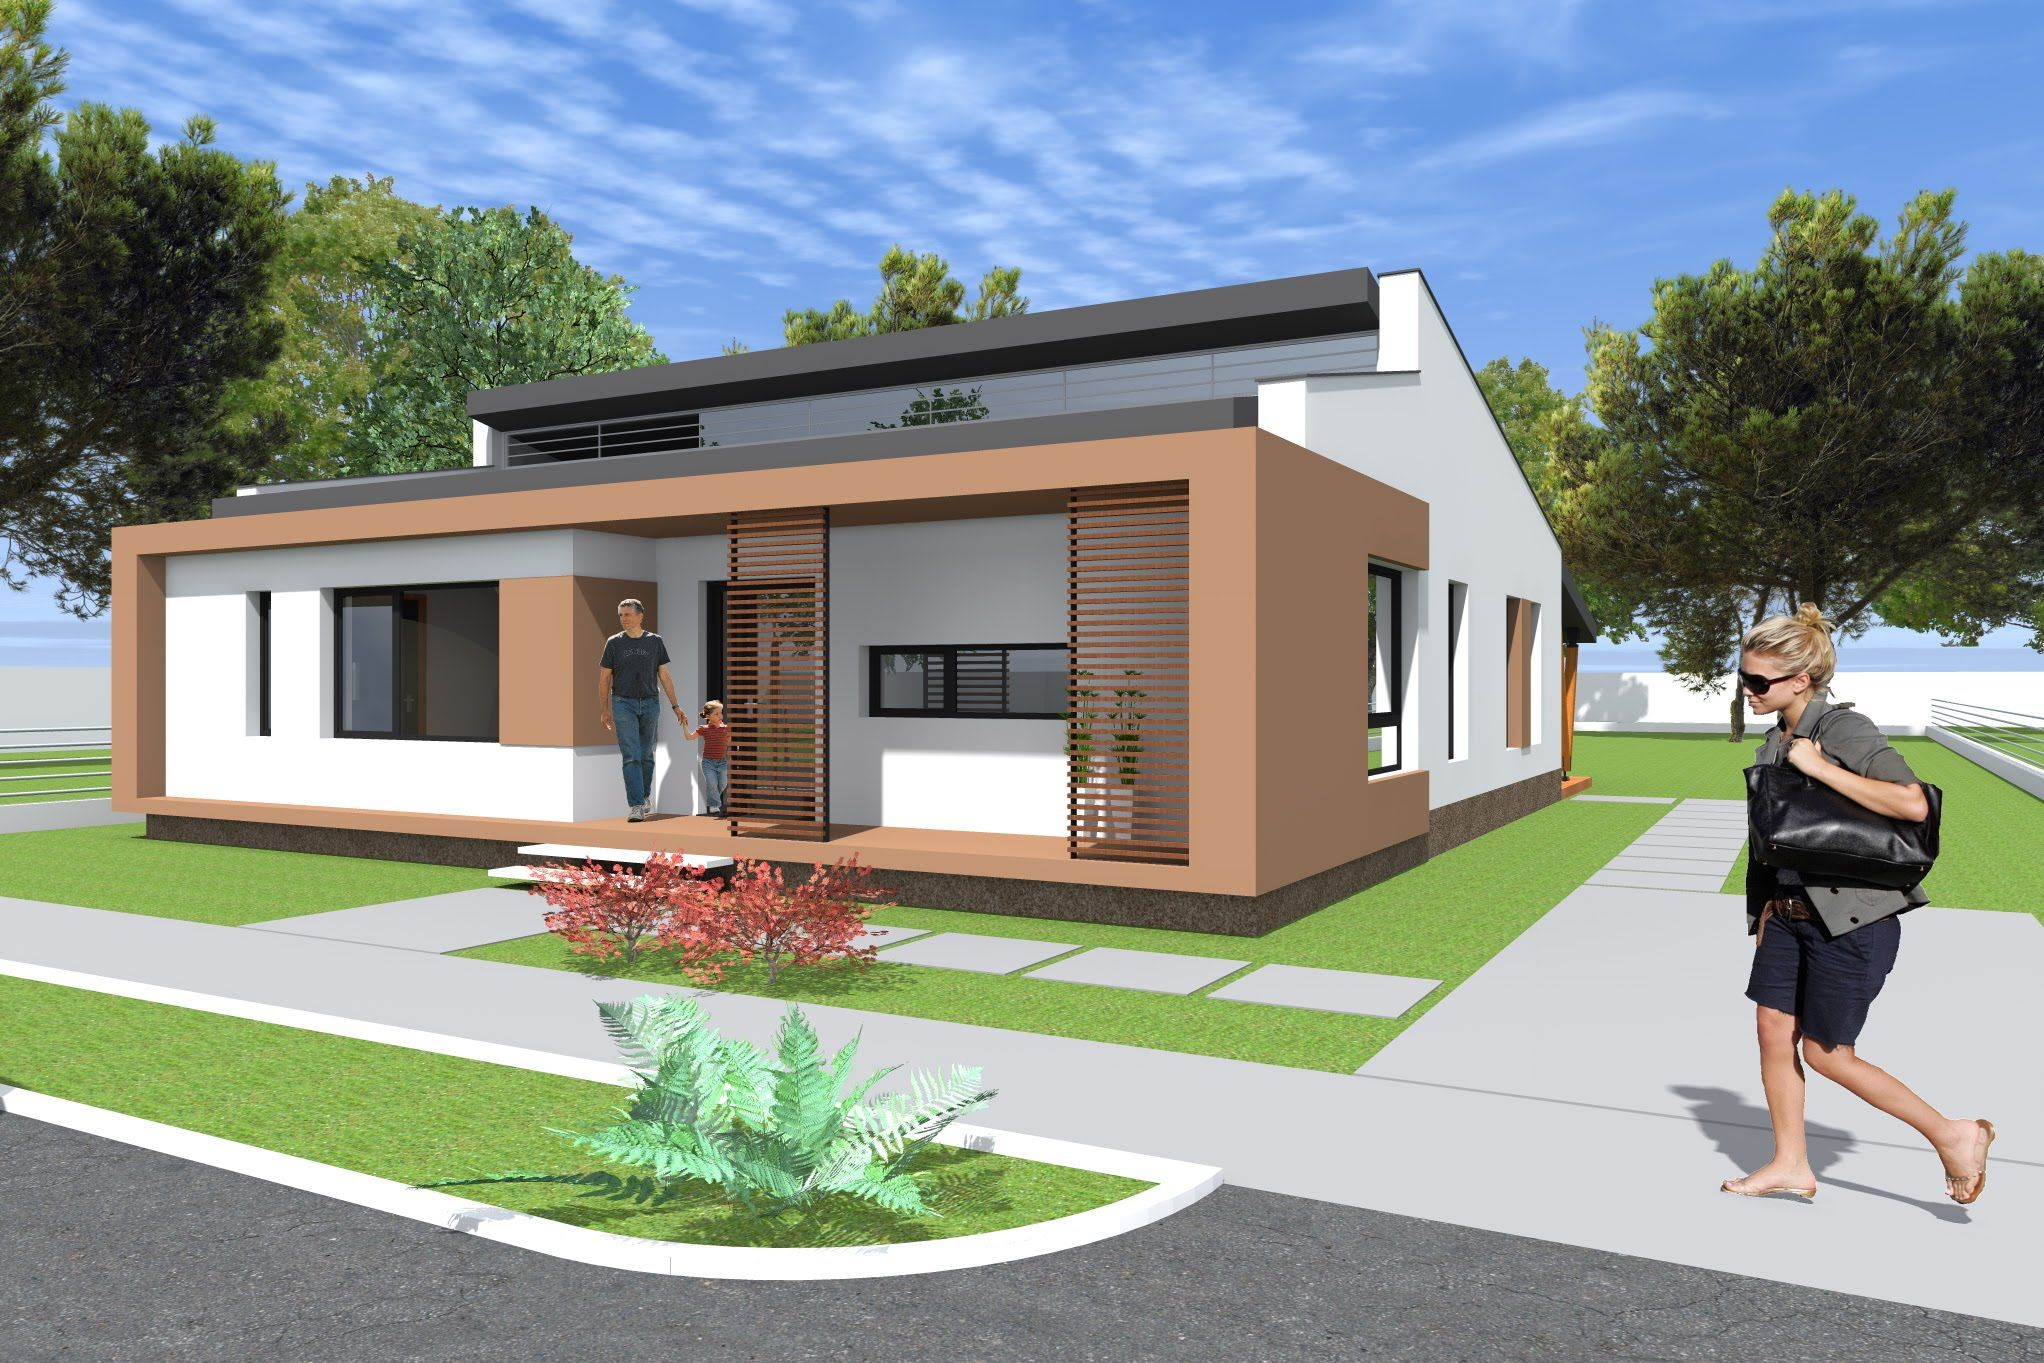 Small modern bungalow house design 133 square meters Modern bungalow plans